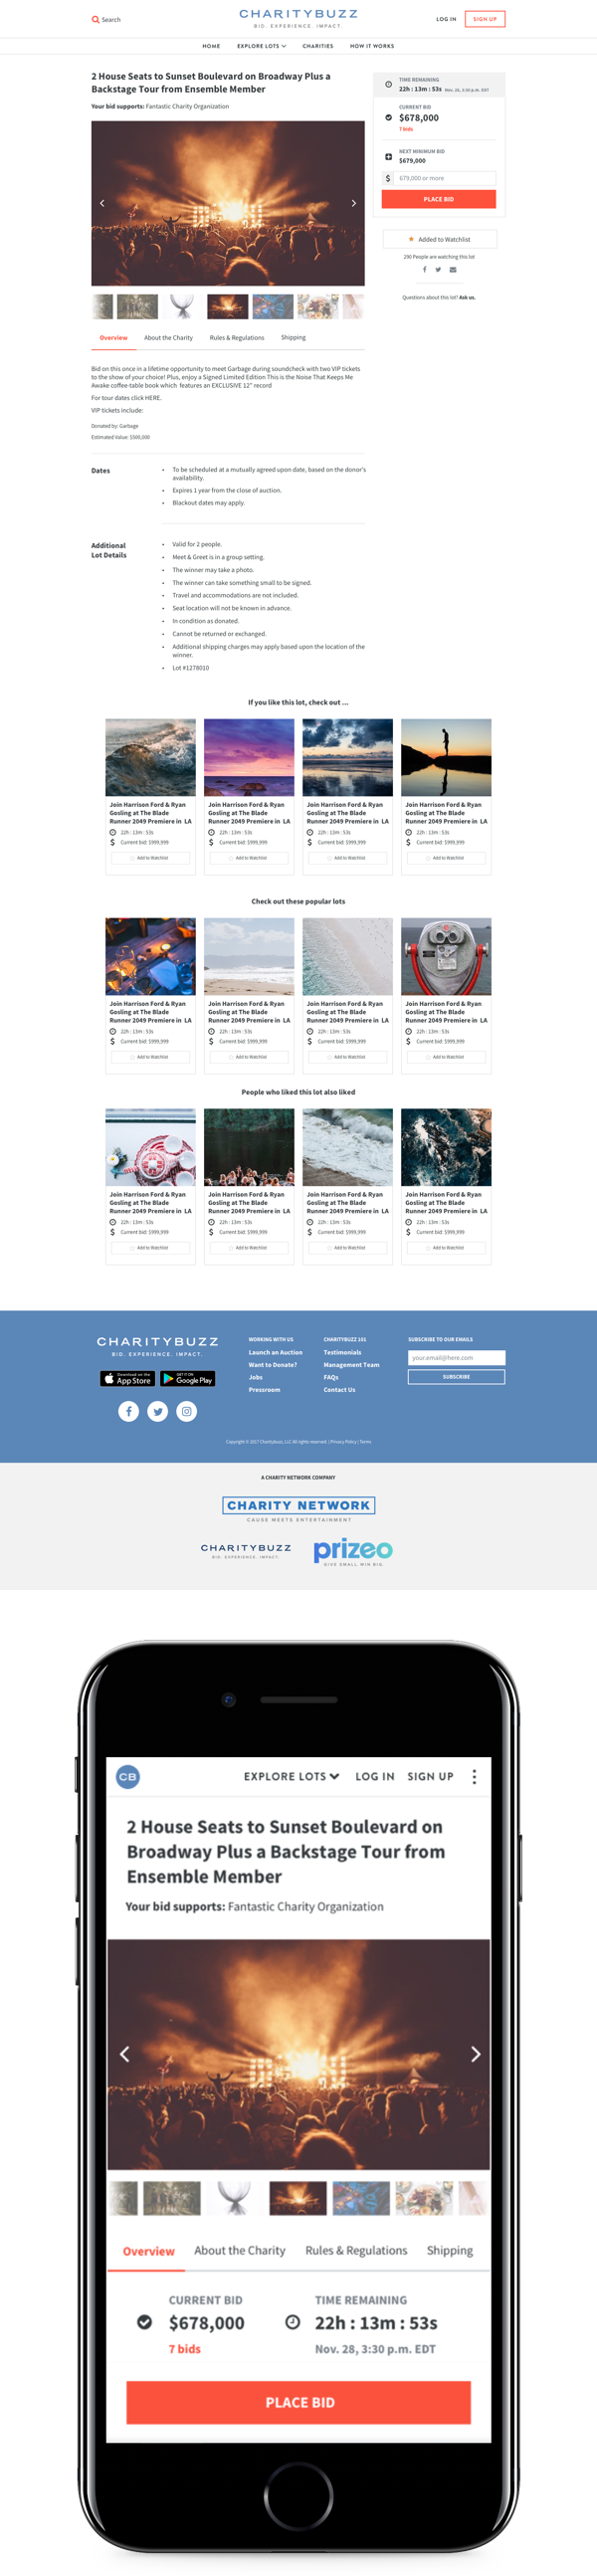 Prizeo home page redesign screens.